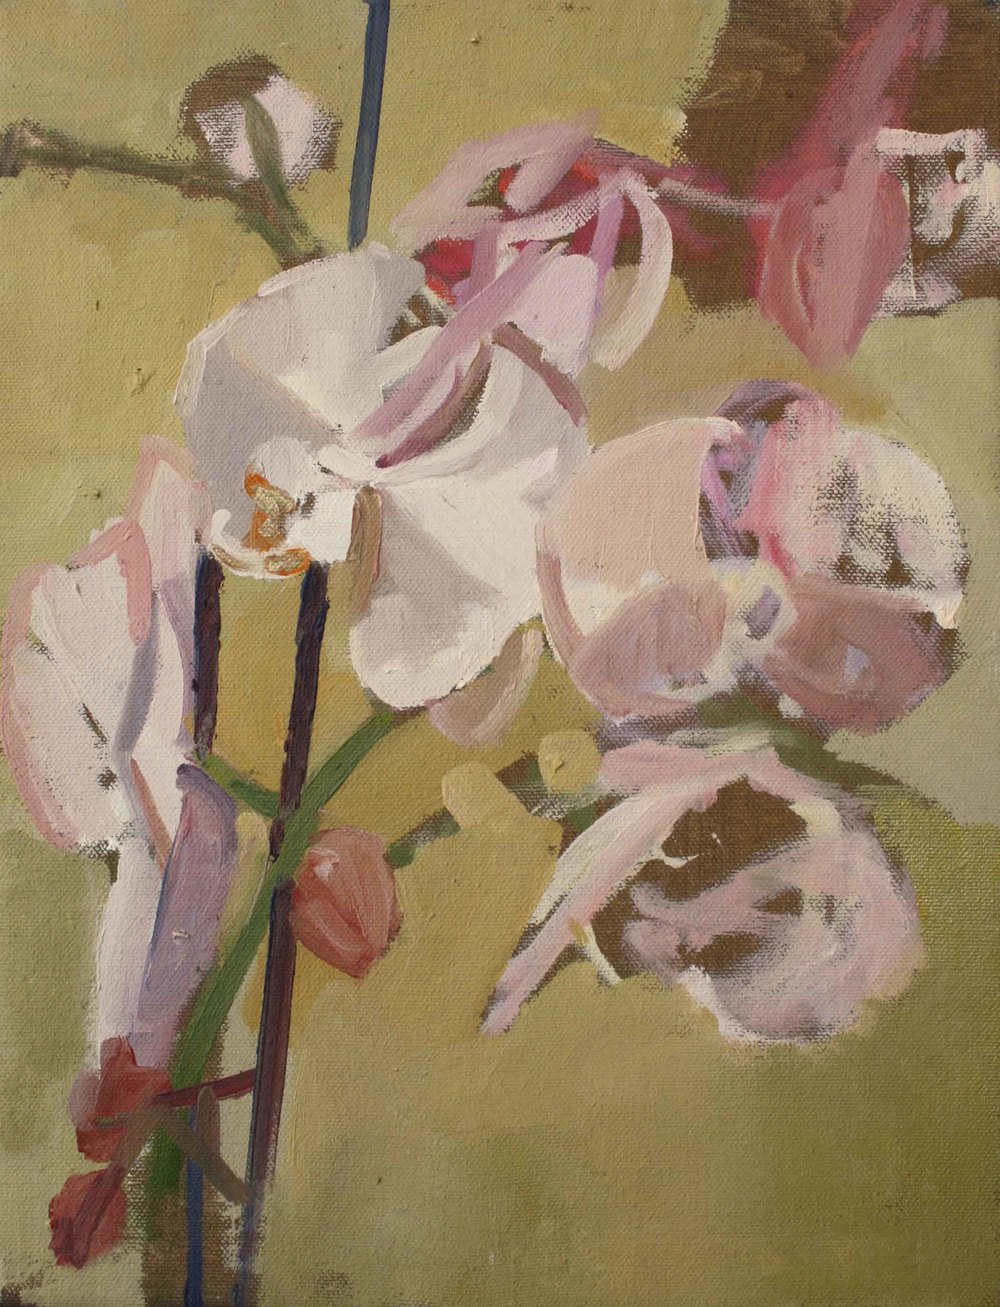 35 x 27 cm Pink Orchid III, Oil on Canvas